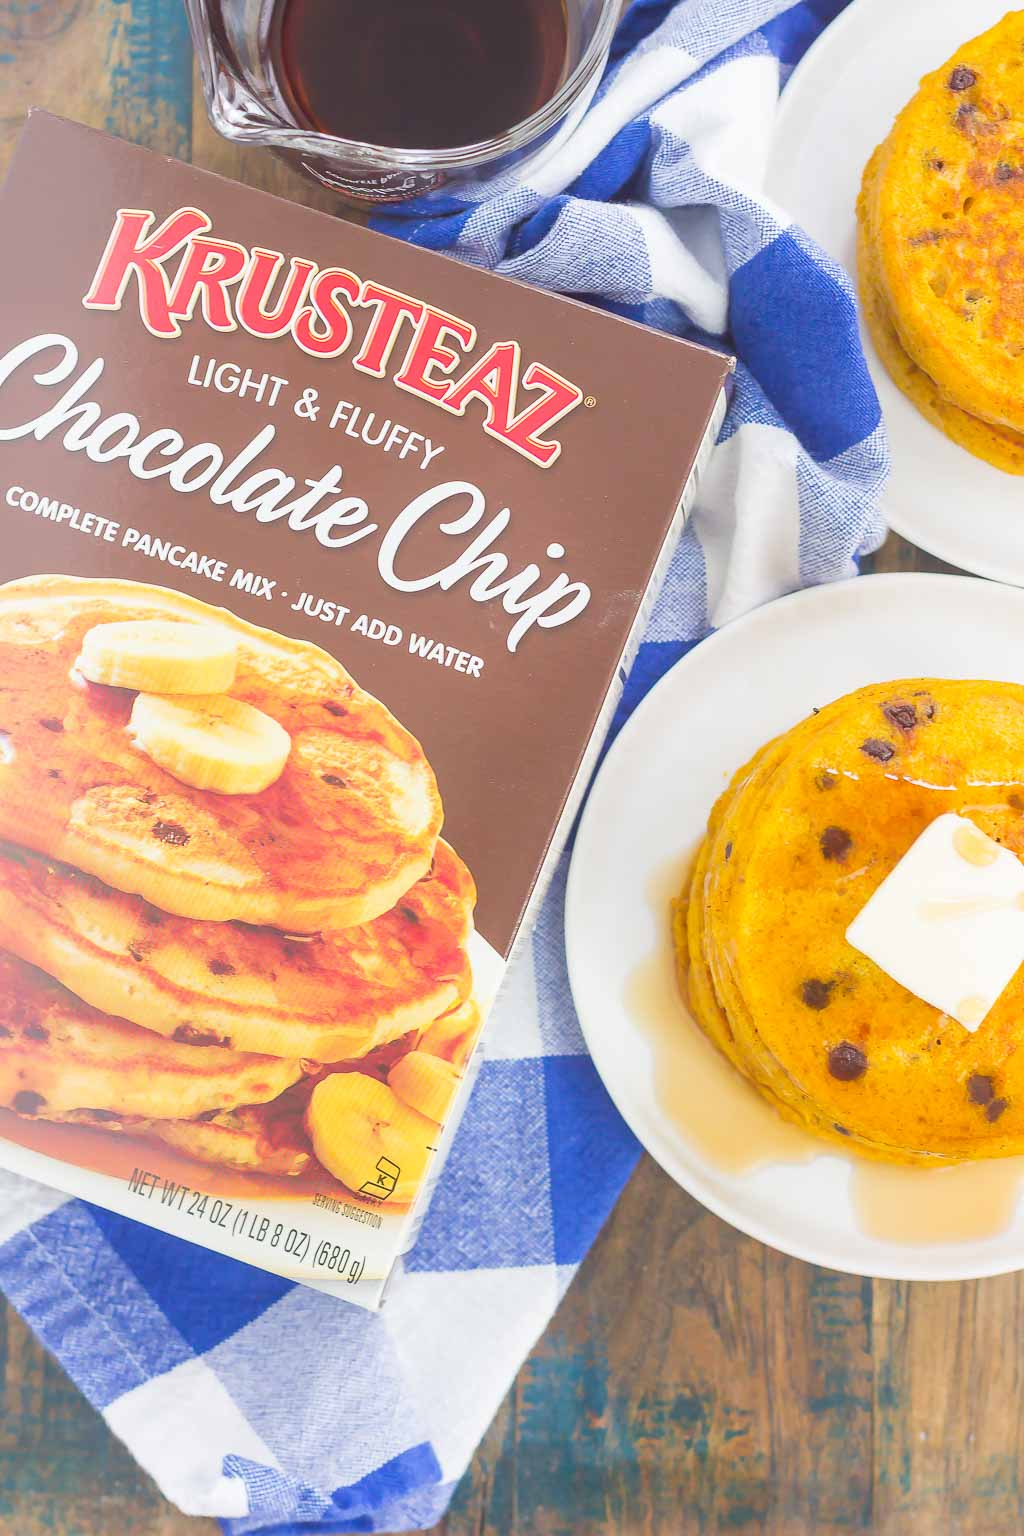 These chocolate chip pumpkin pancakes make a delicious and cozy breakfast for fall. Filled with sweet pumpkin and overflowing with chocolate chips, these simple pancakes are soft, fluffy, and so easy to make!